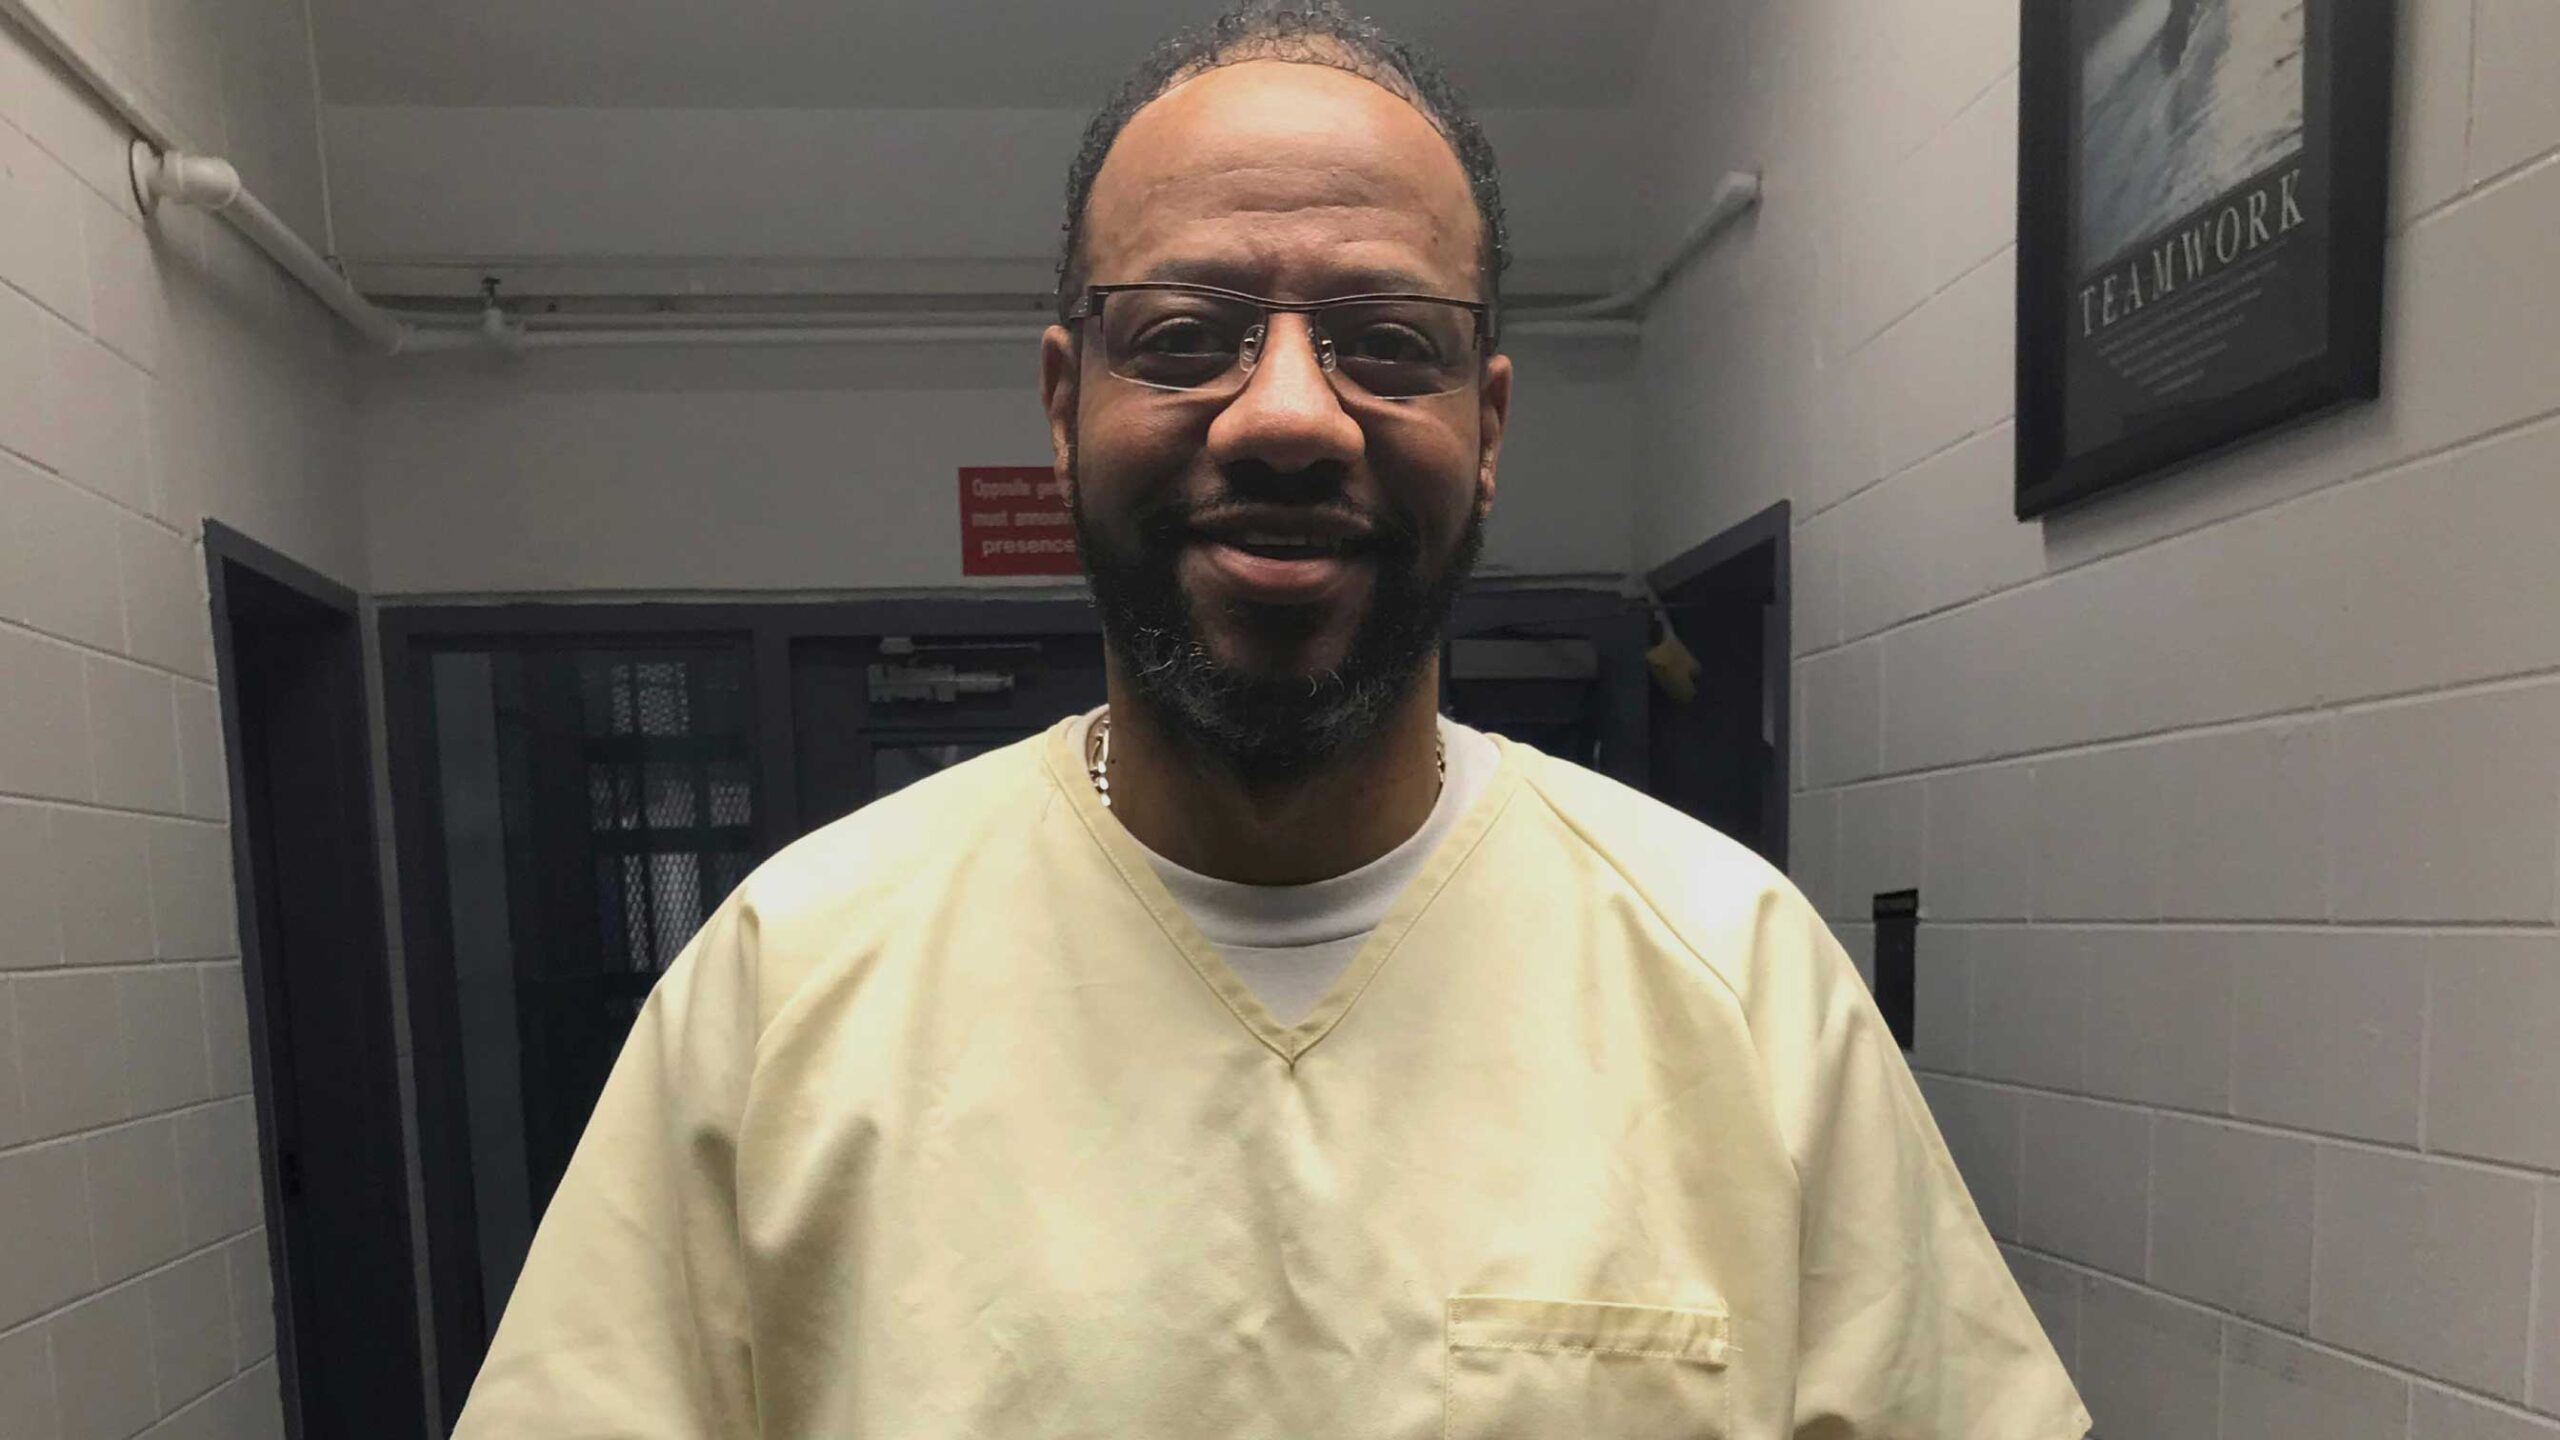 Pervis Payne: What You Need to Know About His Case